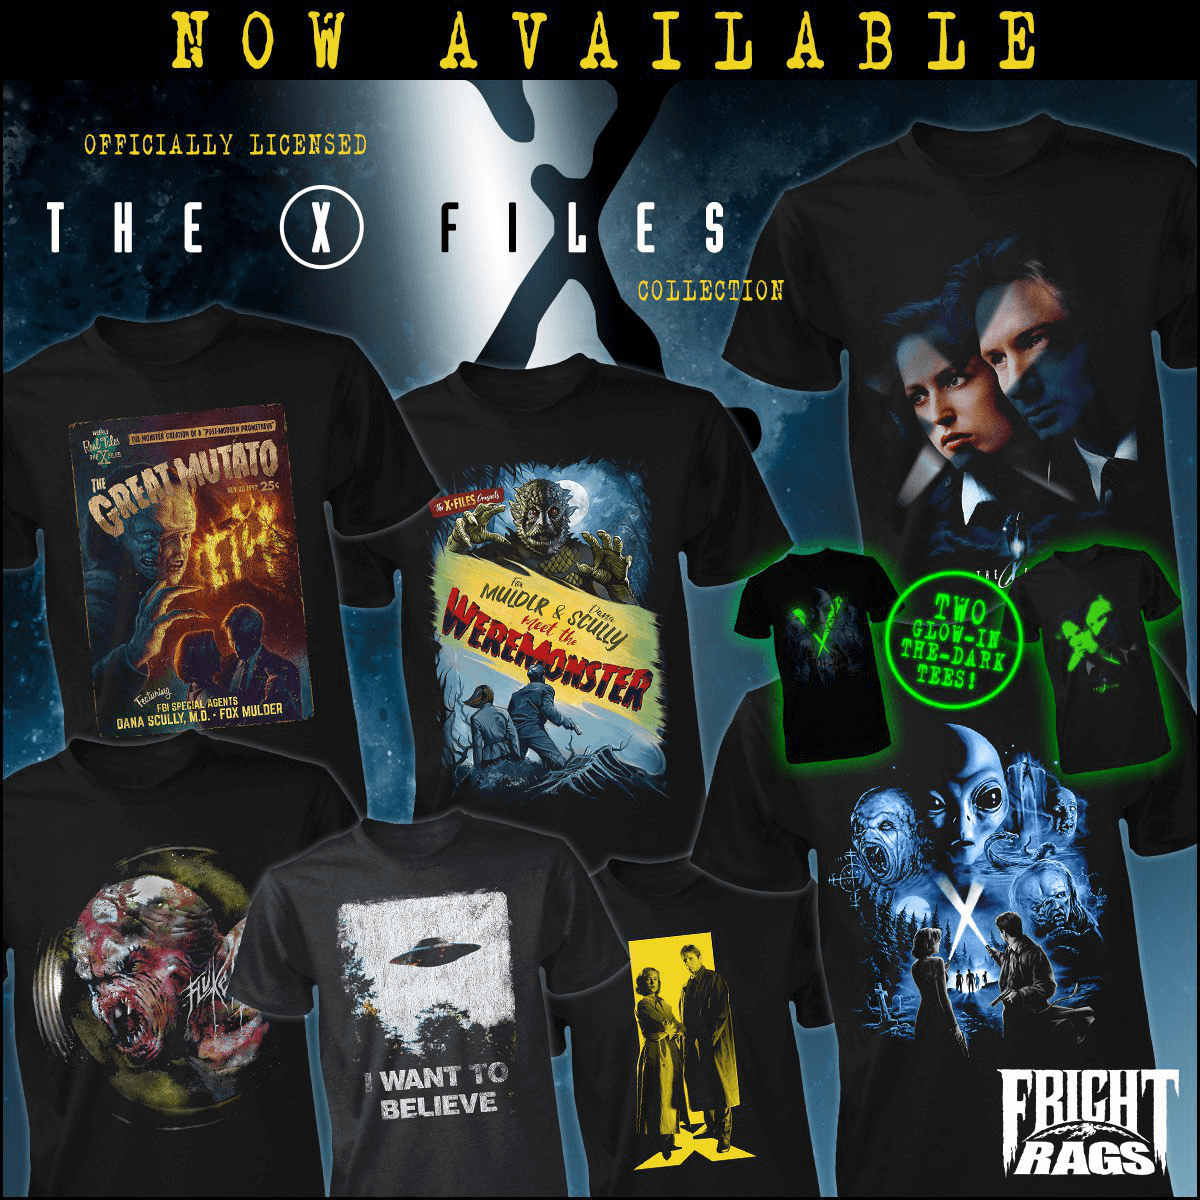 Fright-Rags Releases New Merchandise for The X-Files and The